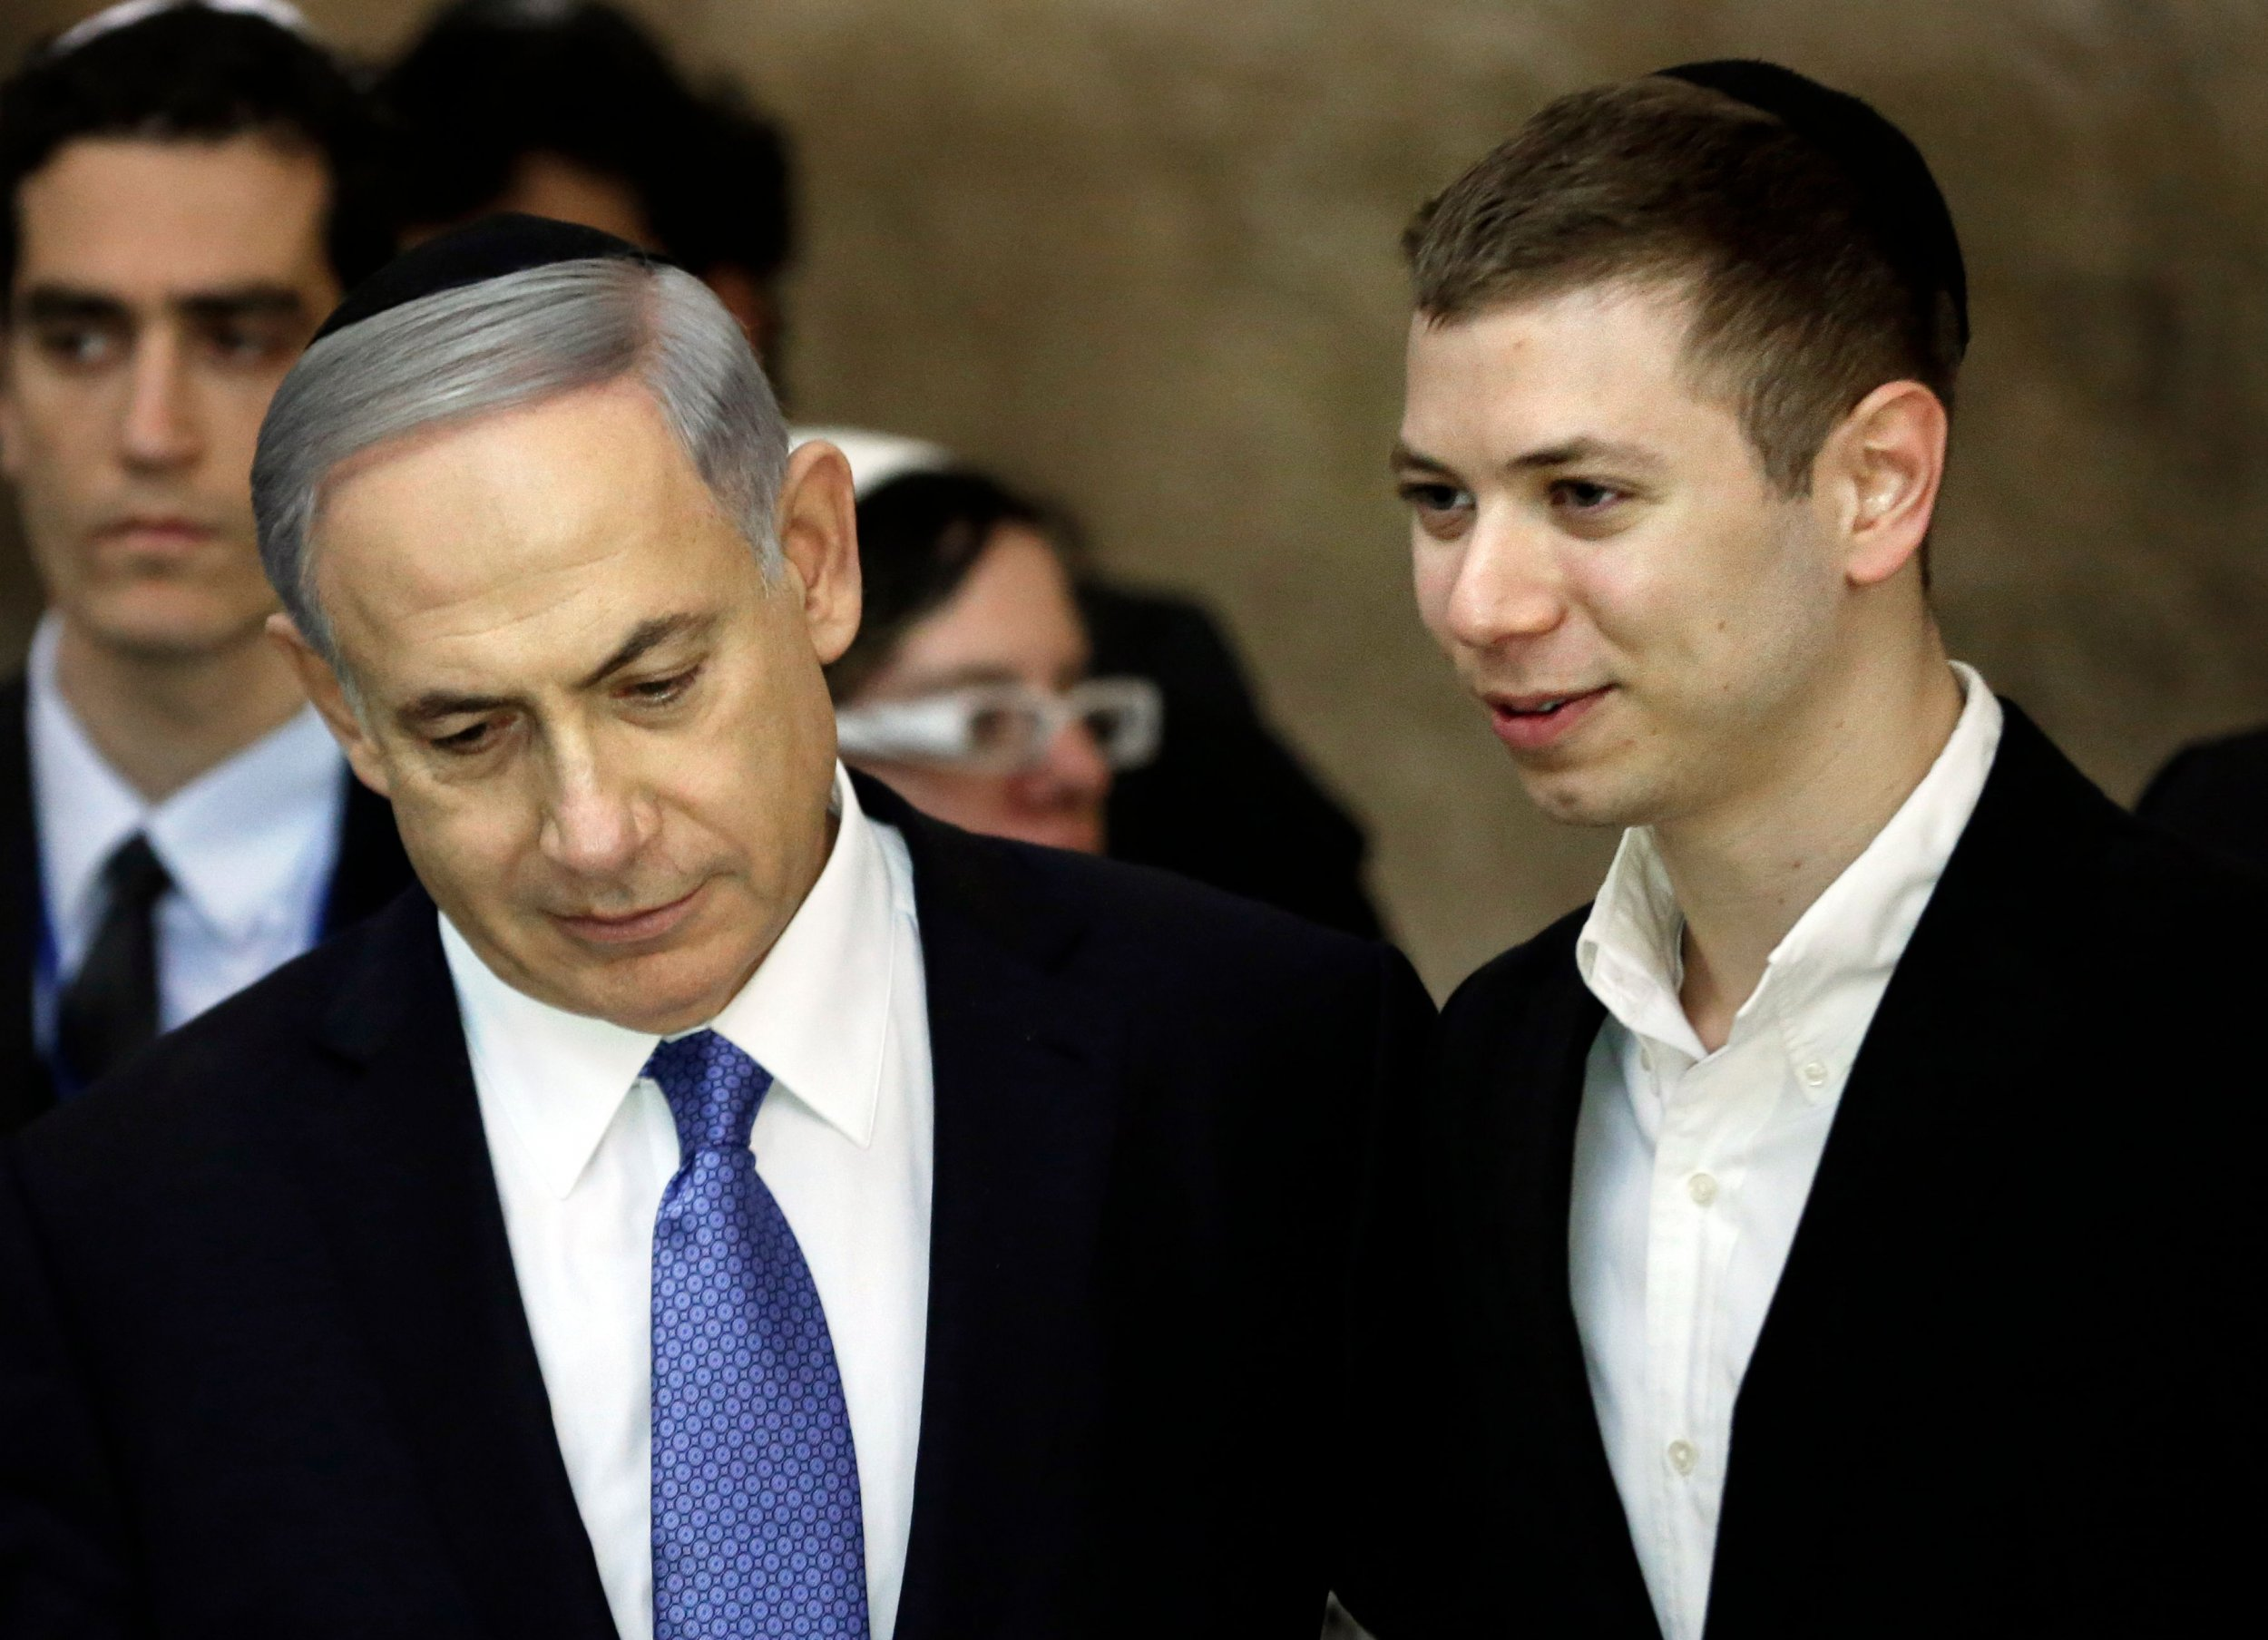 Netanyahu's Son Was Strip Club Regular For Years, Supermodel Ex-Girlfriend Left 'Disgusted' By Secret Tape